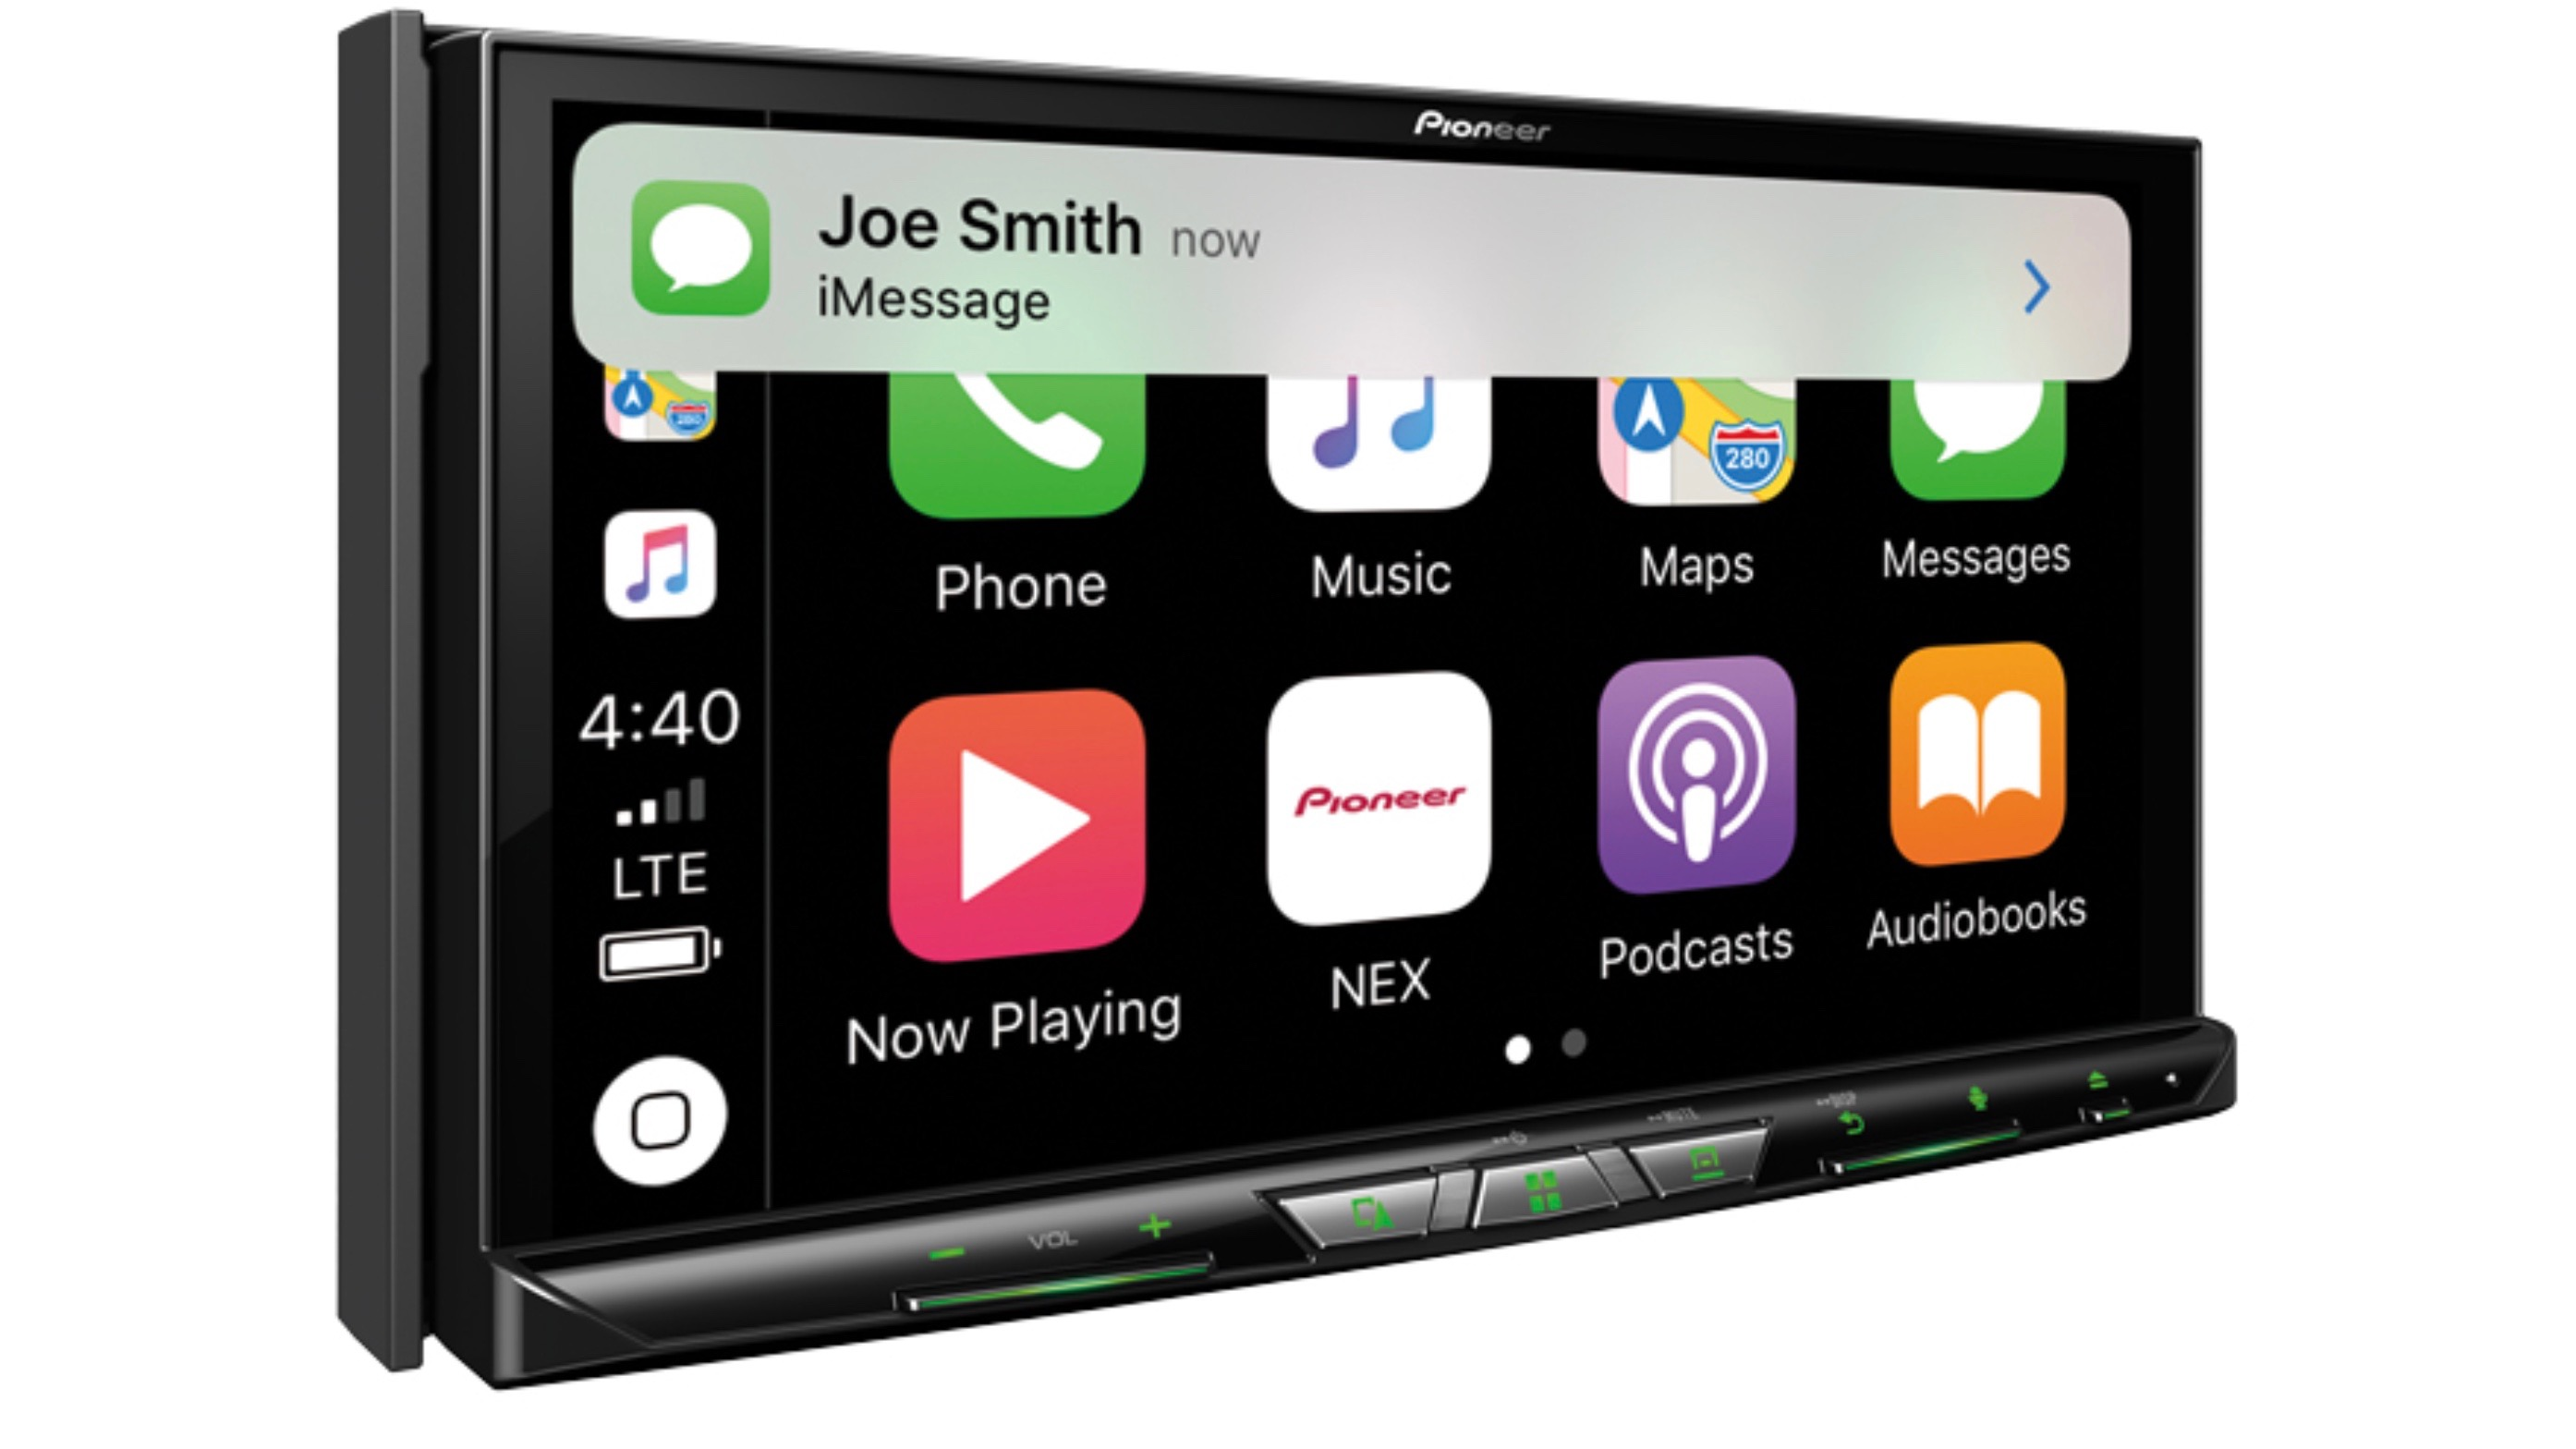 Wireless Carplay Units Wiring Info Pic16f877 Ks0108 Circuit Examples Microbasic Proteus Isis Pioneer Officially Confirms New Head Starting Rh 9to5mac Com Apple